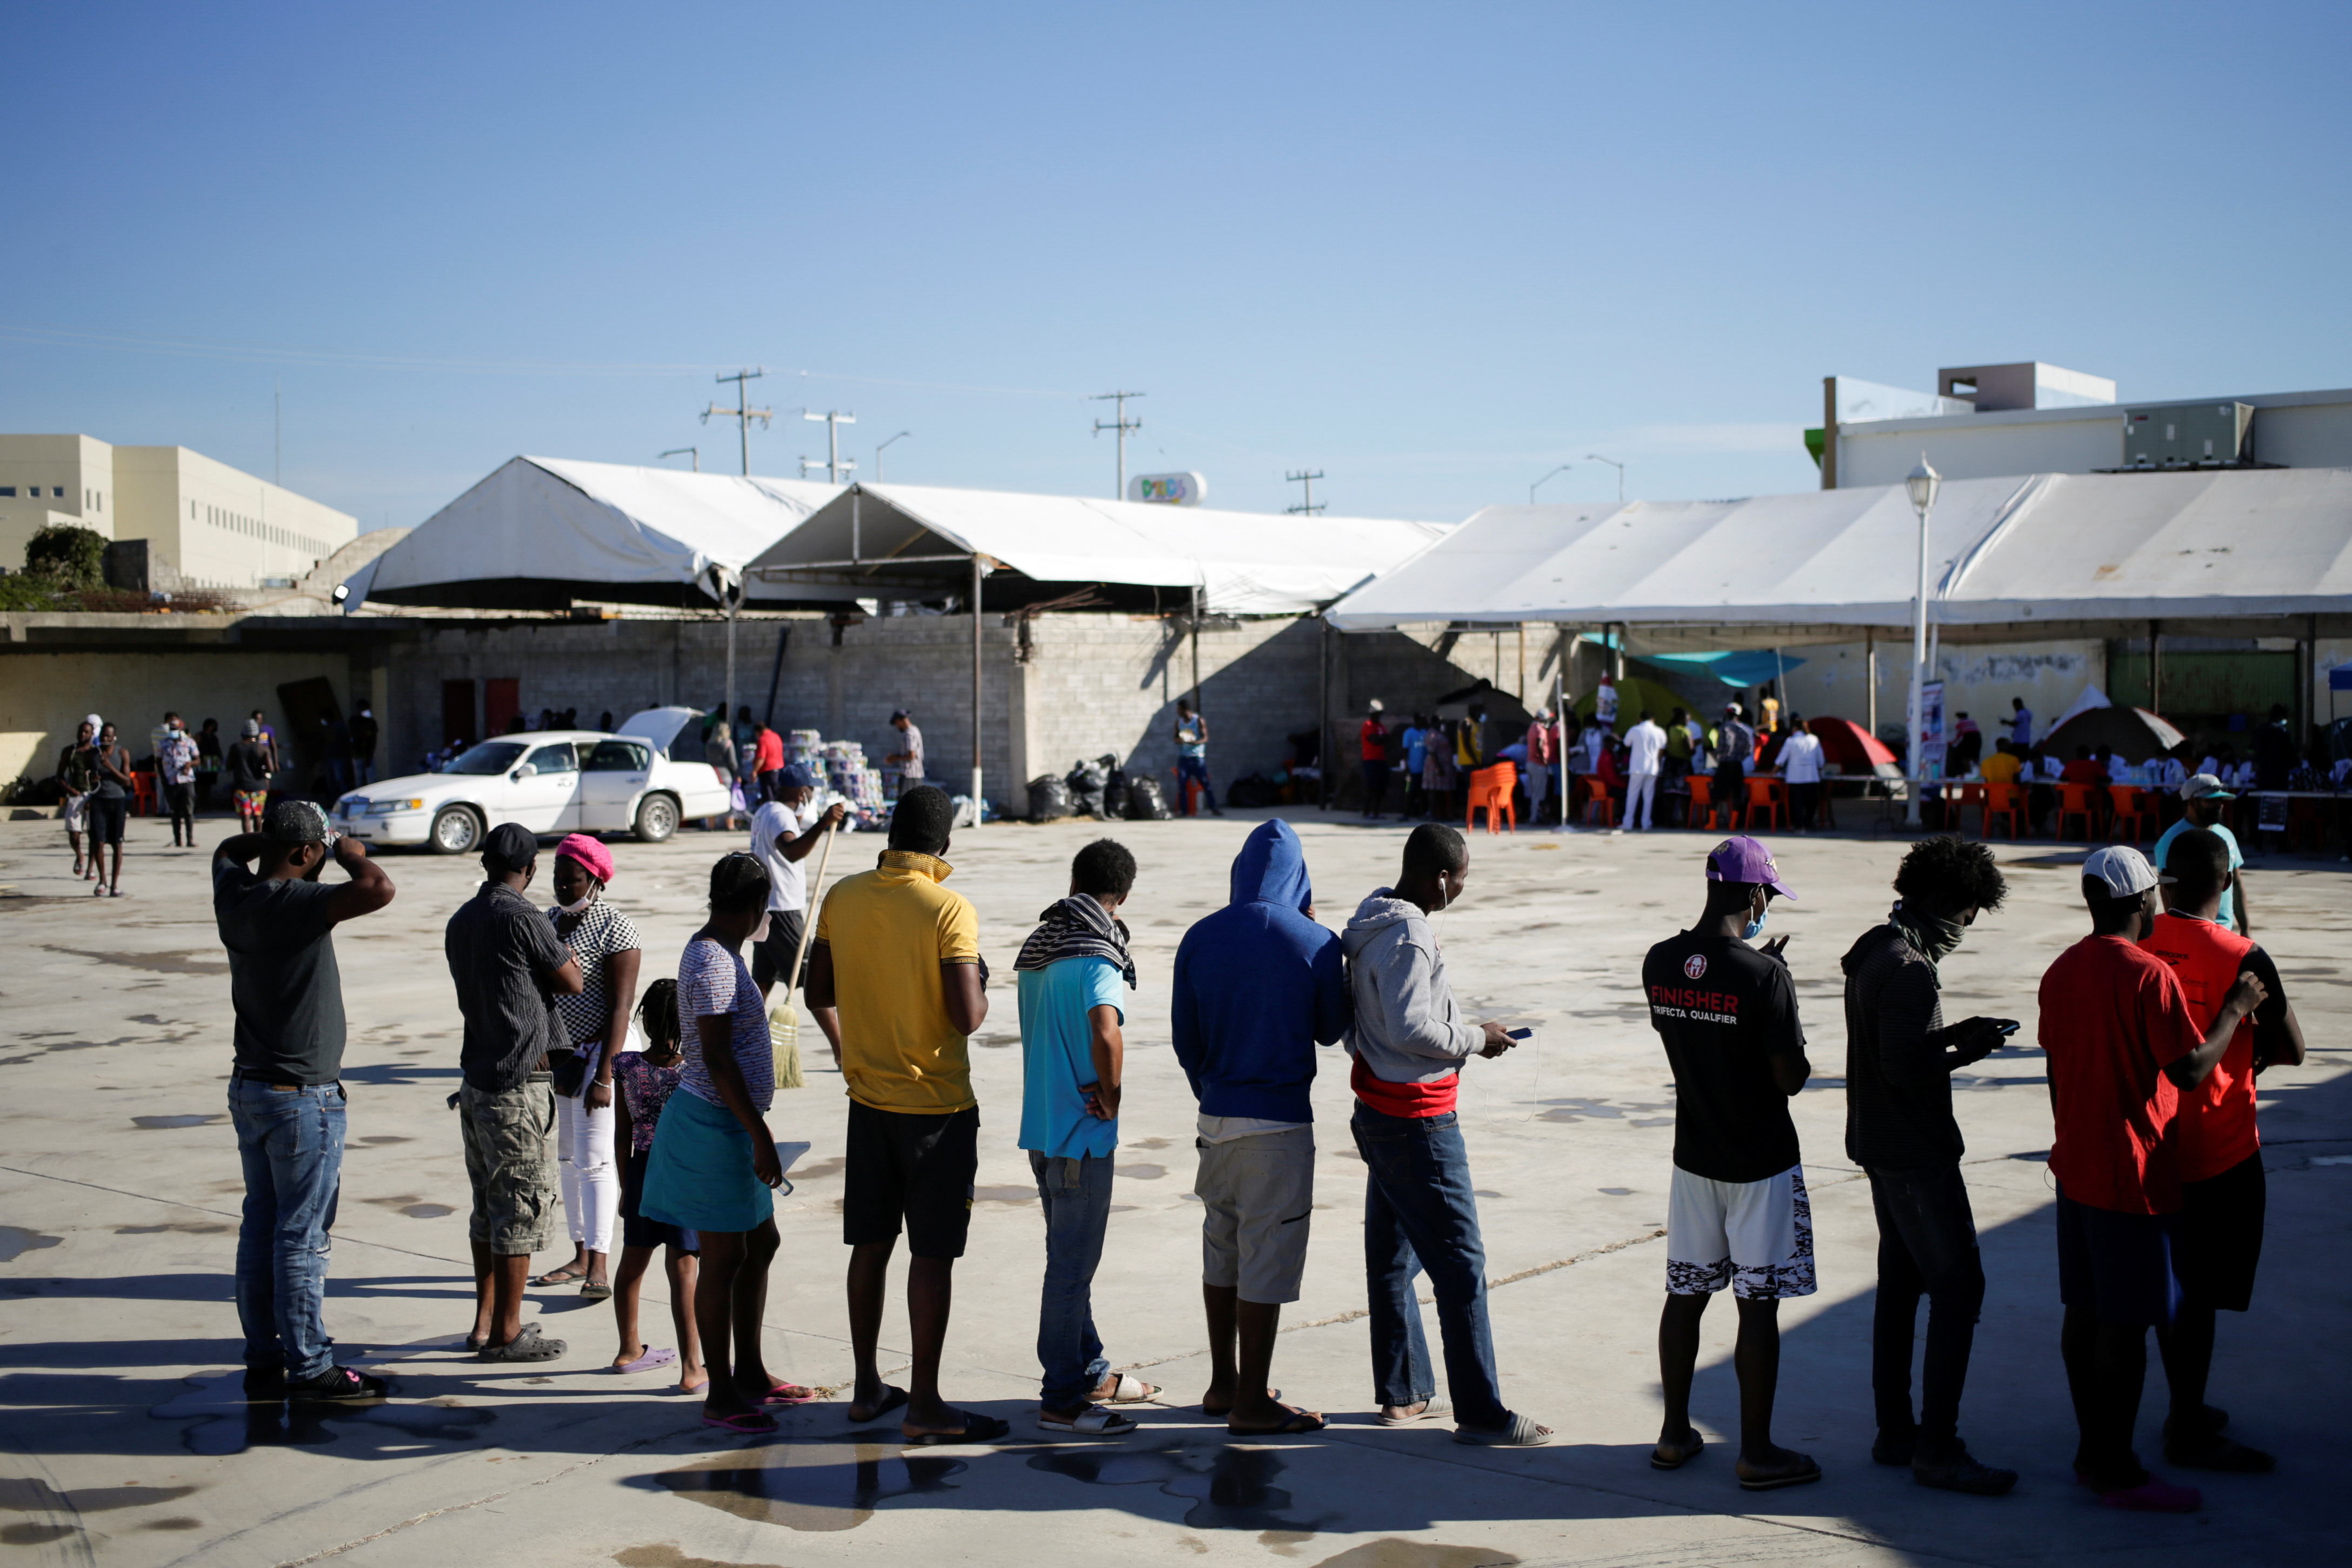 Migrants from Haiti, who returned to the Mexican side of the border to avoid deportation, queue for breakfast at a shelter set by the National Migration Institute (INM) in Ciudad Acuna, Mexico, September 25, 2021. REUTERS/Daniel Becerril